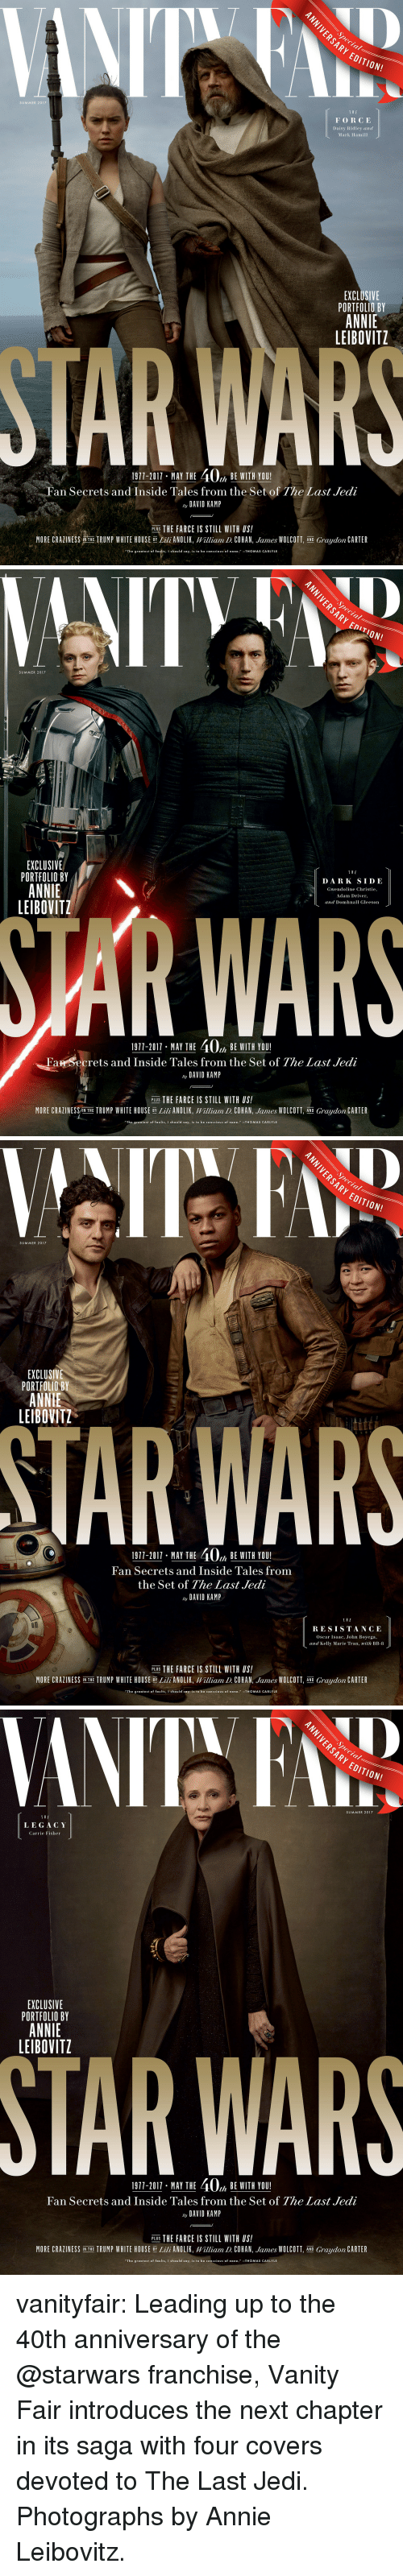 """vanity fair: ARY  EDITION!  SUMMER 2017  THE  FORCE  Daisy Ridley and  Mark Hamill  EXCLUSIVE  PORTFOLIO BY  ANNIE  LEIBOVITZ  1911-2011, MAY THE 40% BEWITH YOU!  Fan Secrets and Inside Tales from the Set of The Last Jedi  ay DAVID KAMP  PLUS THE FARCE IS STILL WITH US!  MORE CRAZINESS NTHE TRUMP WHITE HOUSE ili ANOLIK, William D. COHAN, James WOLCOTT, AND Graydon CARTER  The greatest of faults, I should say, is to be conscious of none.THOMAS CARLYLE   SUMMER 2017  EXCLUSIVE  PORTFOLIO BY  ANNIE  LEIBOVITZ  DARK SIDE  Gwendoline Christie,  Adam Driver  and Domhnall Gleeson  WAR  1911-2017 MAY THE 40, BE WITH YOU!  Fan Secrets and Inside Tales from the Set of The Last Jedi  ay DAVID KAMP  PLUS THE FARCE IS STILL WITH US!  MORE CRAZINESS/IN THE TRUMP WHITE HOUSE B Lili ANOLIK, William D. COHAN, James WOLCOTT, AND Graydon CARTER  """"The greatest of faults, I should say, is to be conscious of none.""""-THOMAS CARLYLE   ARY  EDITION!  SUMMER 2017  EXCLUSI  PORTFOLIO BY  ANNIE  LEIBOVITZ  TAR WARS  1911-2011 . MAY THE 40% BE WITH YOU!  Fan Secrets and Inside Tales from  the Set of The Last Jedi  ay DAVID KAMP  1 HE  RESISTANCE  Oscar Isaac, John Boyega,  and Kelly Marie Tran, with BB-8  PLUS THE FARCE IS STILL WITH US!  MORE CRAZINESS İN THE TRUMP WHITE HOUSE BY Lil ANOLIK, William D. COHAN James WOLCOTT AND Graydon CARTER  The greatest of faults, I should say, is to be conscious of none.""""-THOMAS CARLYLE   Decial  ARY EDITION!  SUMMER 2017  T H E  LEGACY  Carrie Fisher  EXCLUSIVE  PORTFOLIO BY  ANNIE  LEIBOVITZ  STAR WARS  1971-2011 MAY THE 40, BE WITH YOU!  Fan Secrets and Inside Tales from the Set of The Last Jedi  ay DAVID KAMIP  PLIE THE FARCE IS STILL WITH US!  ER  MORE CRAZINESS NTHE TRUMP WHITE HOUSE BY Lili ANOLIK, William D. COHAN, """"lunes WOLCOTT AND Graydon CA  """"The greatest of faults, I should say, is to be conscious of e.-THOMAS CARLYLE vanityfair: Leading up to the 40th anniversary of the @starwars franchise, Vanity Fair introduces the next chapter in its saga wit"""